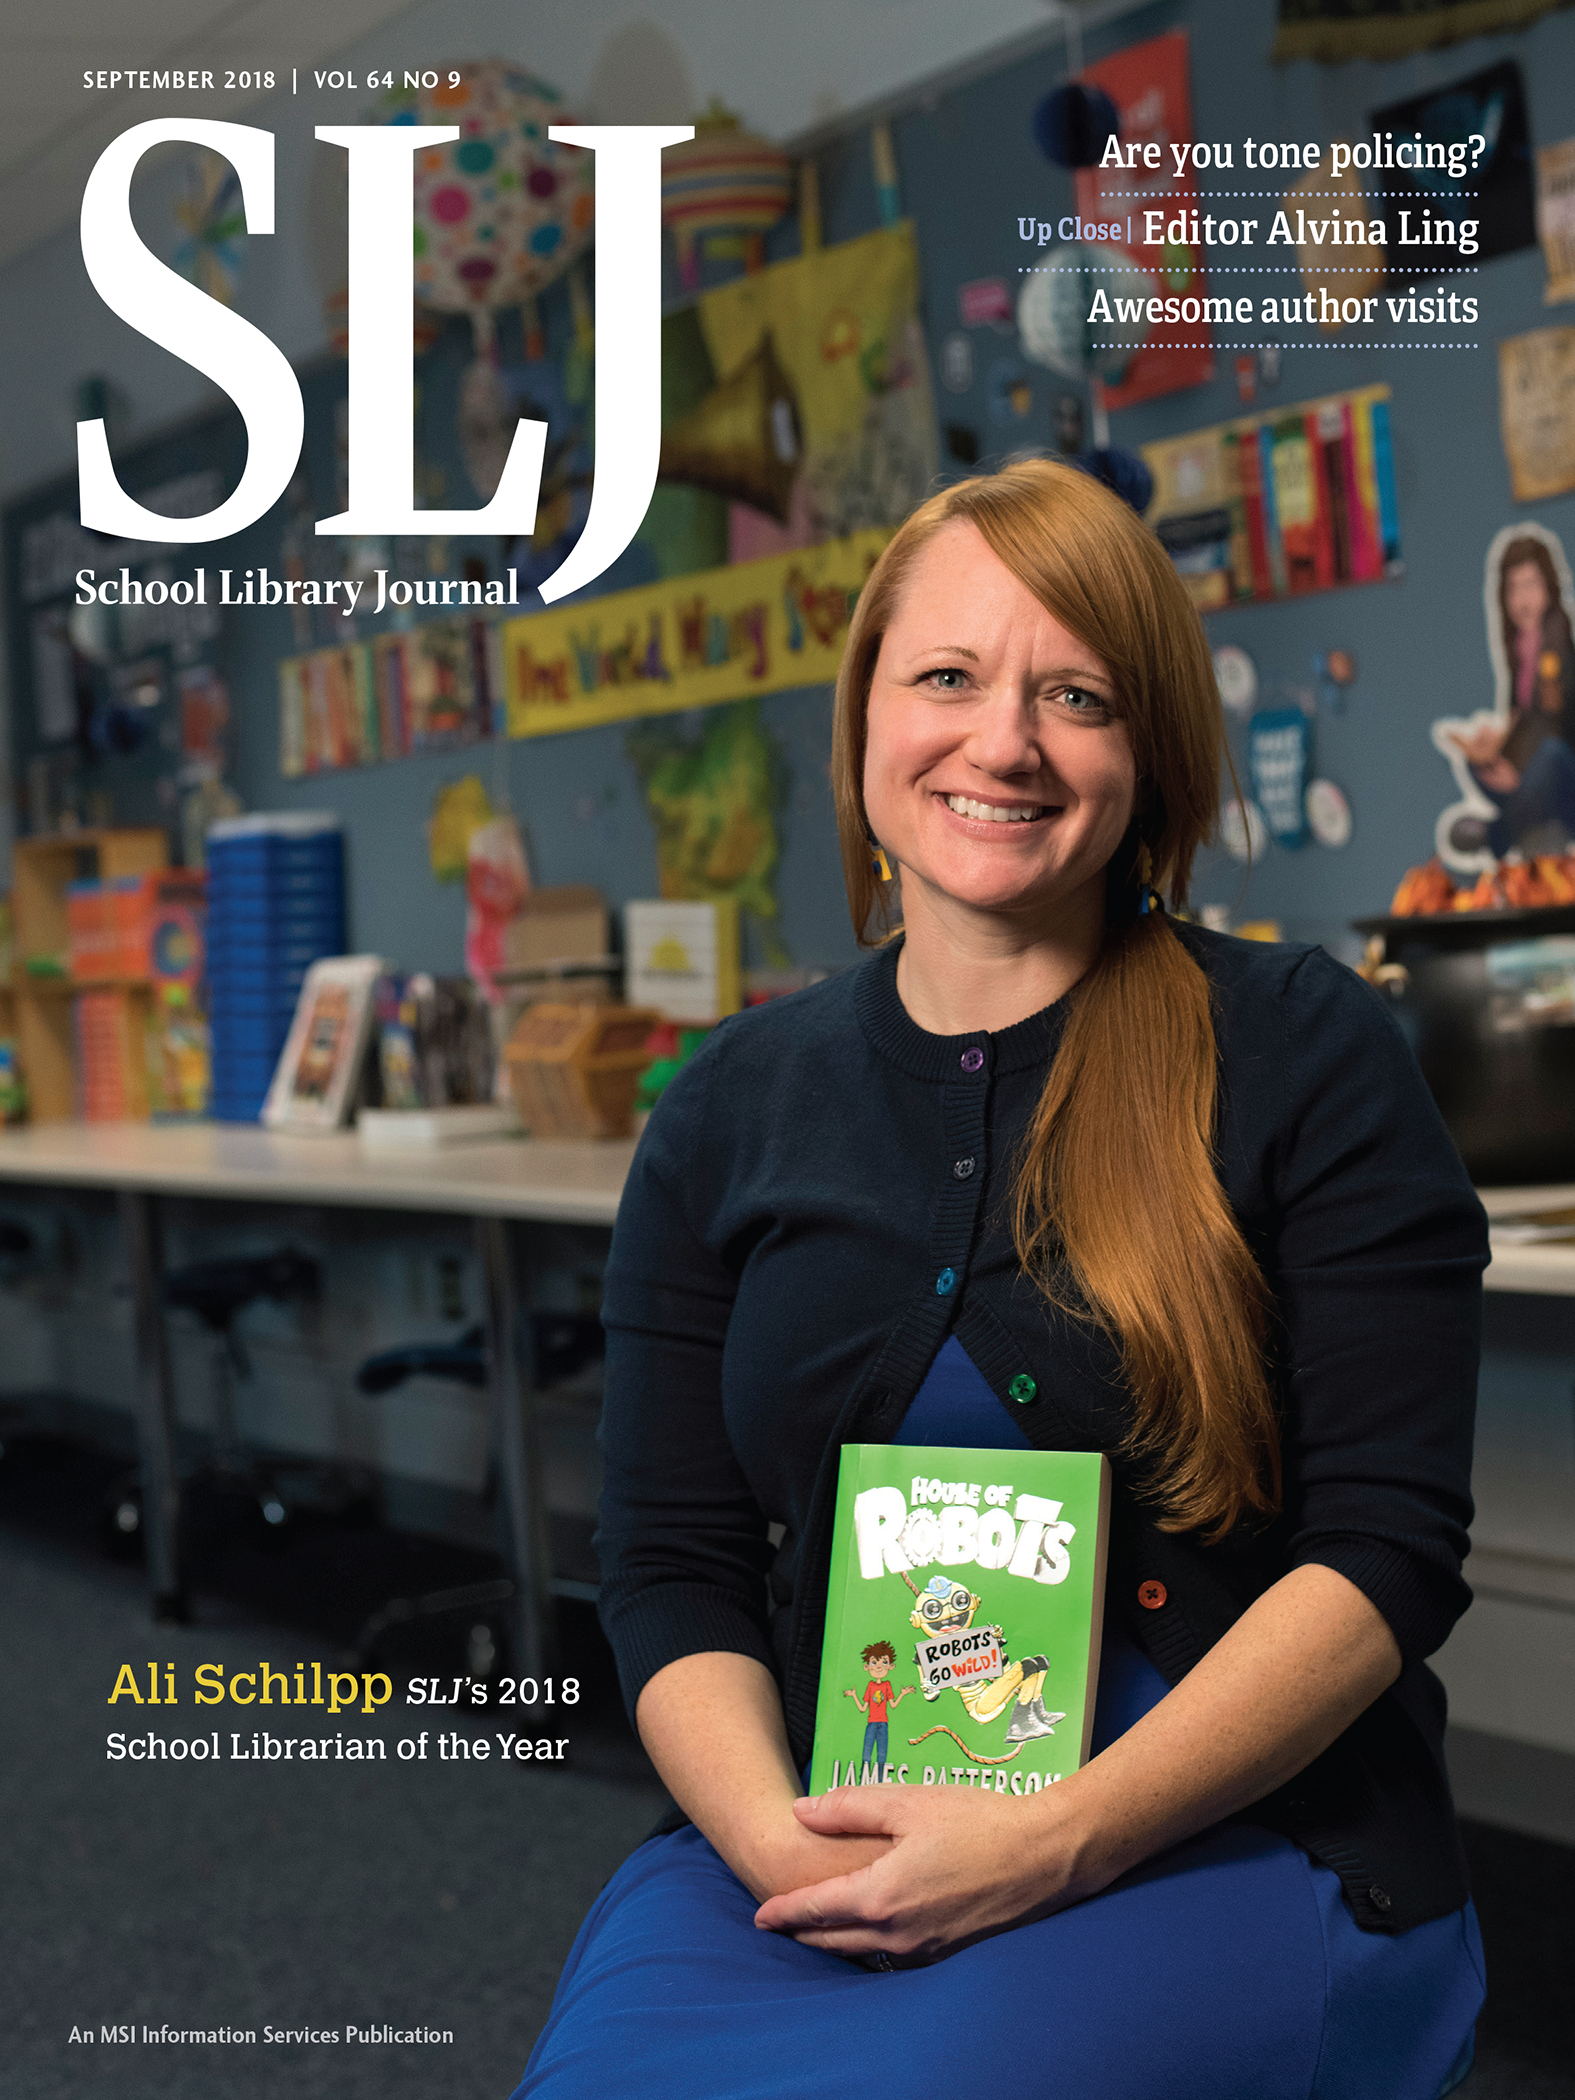 SLJ Names 2018 School Librarian of the Year